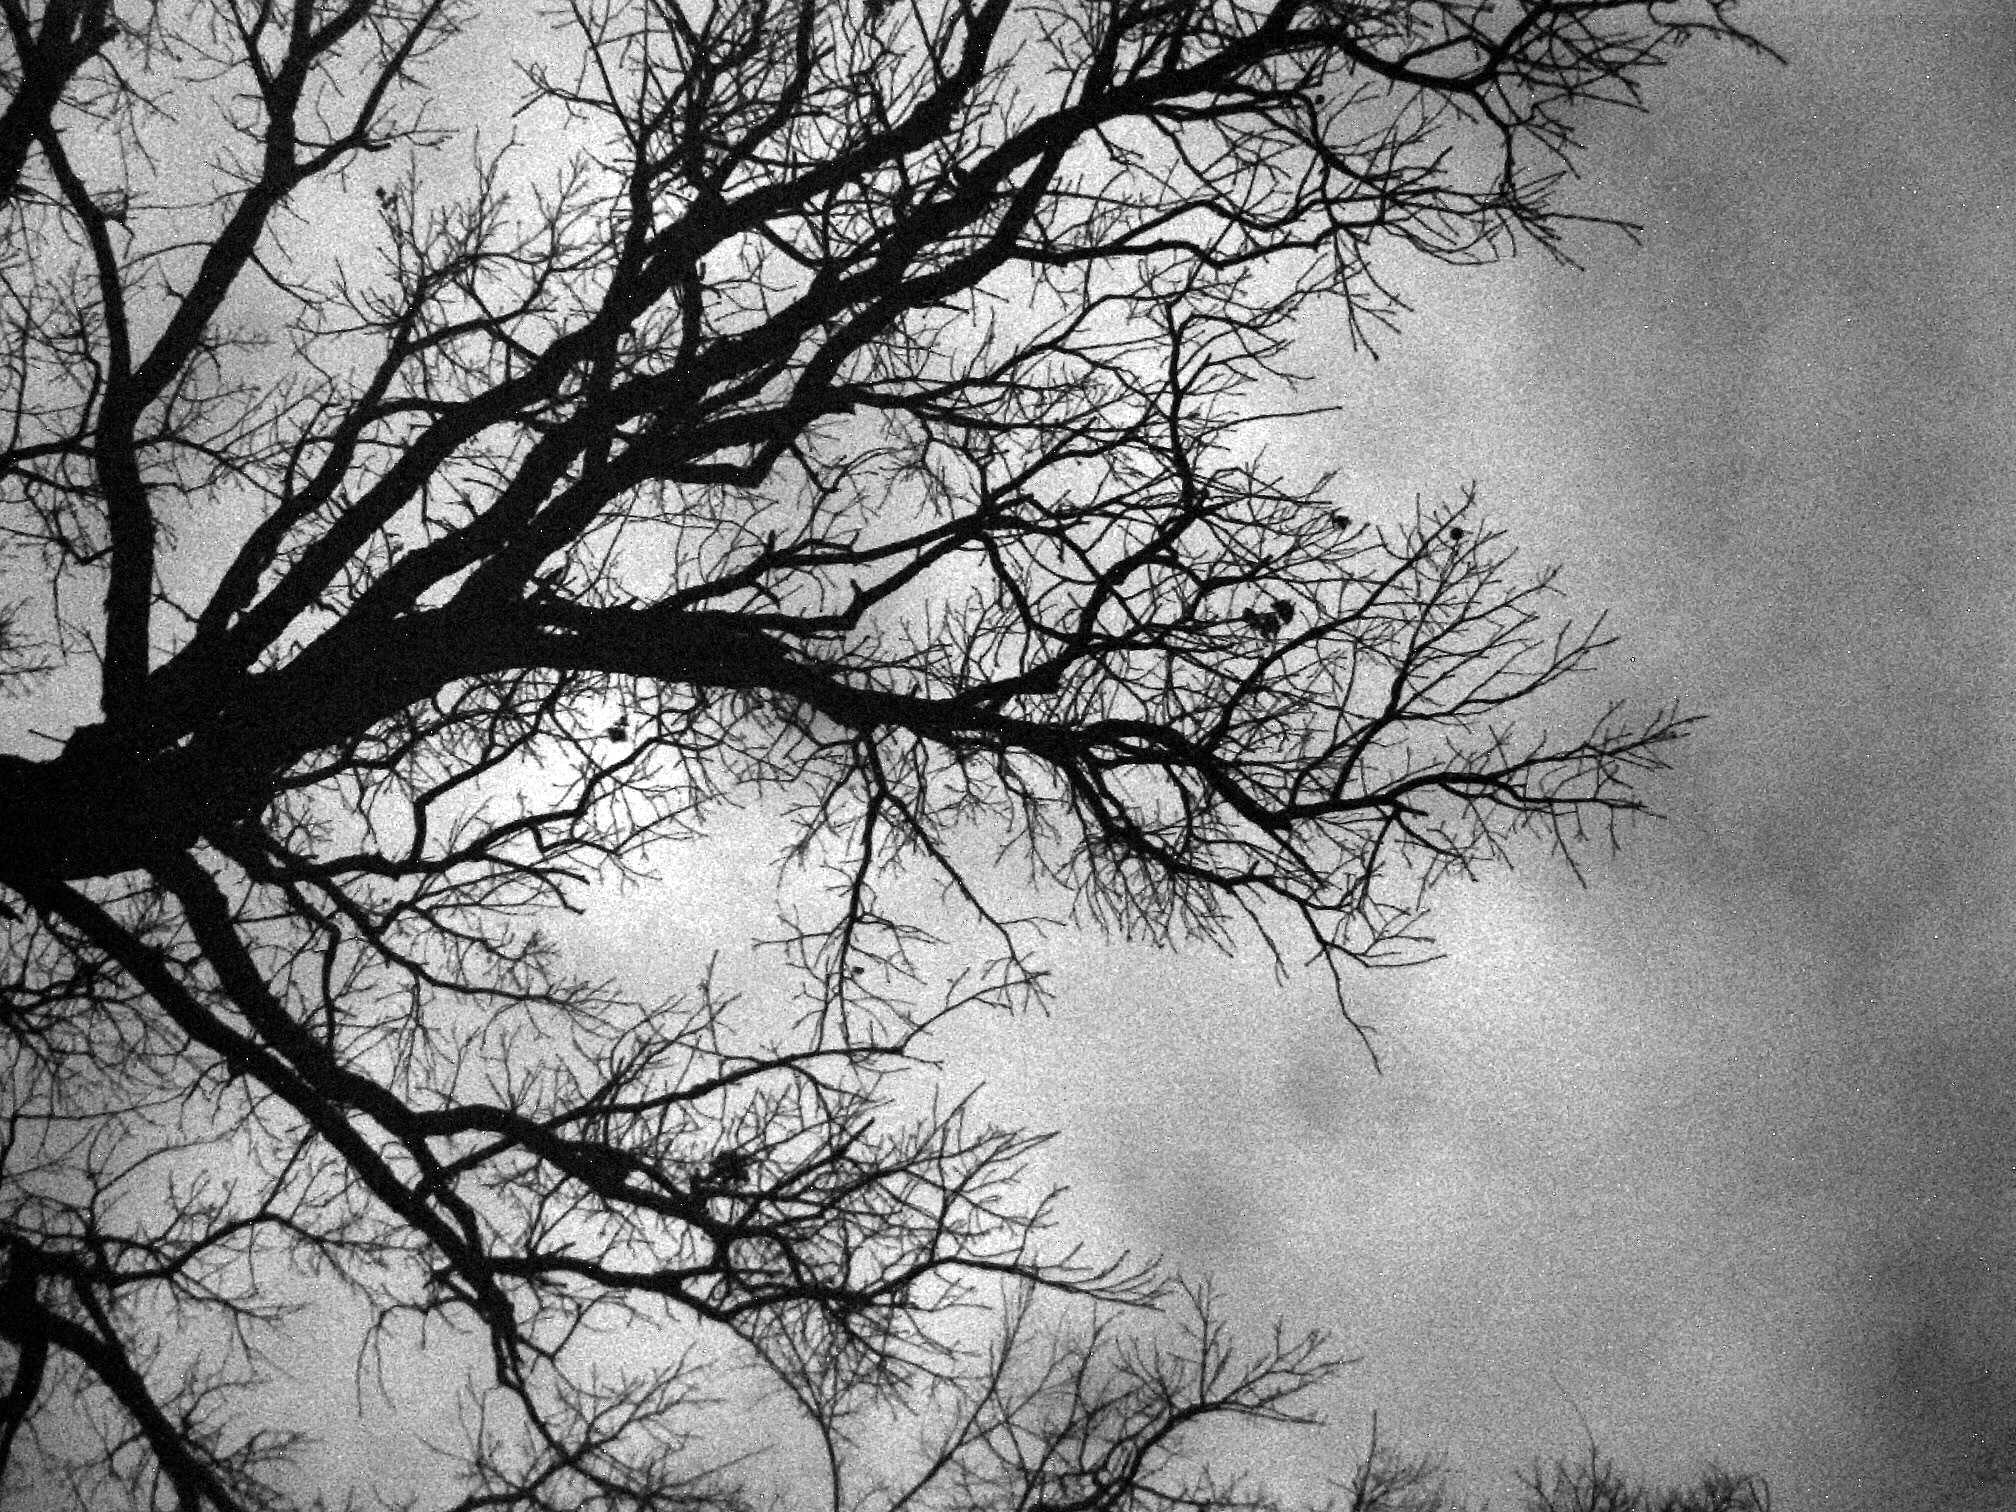 Troy's Photos: Nature & Art - Black and white tree in winter